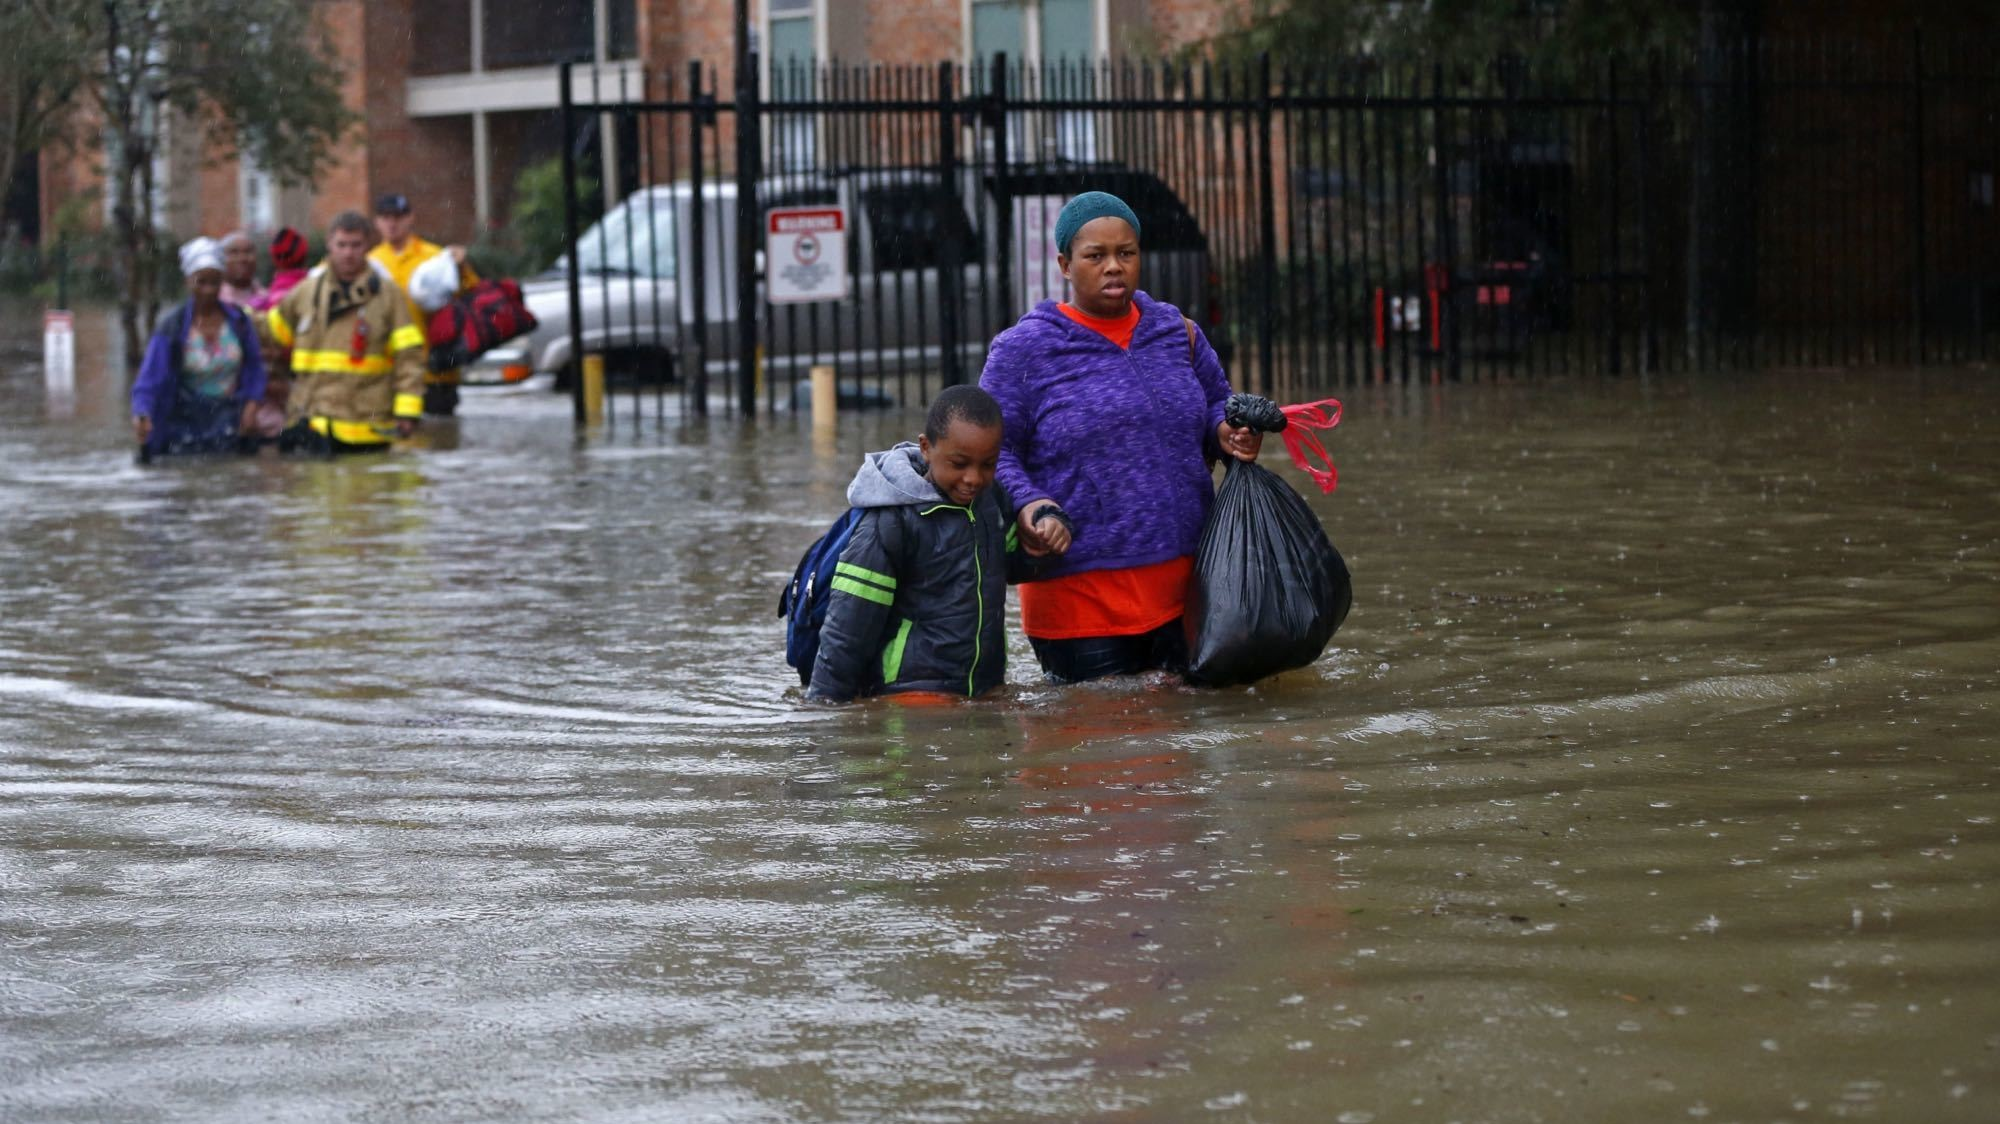 More than 1,000 rescued after 'unprecedented' floods in the deep South